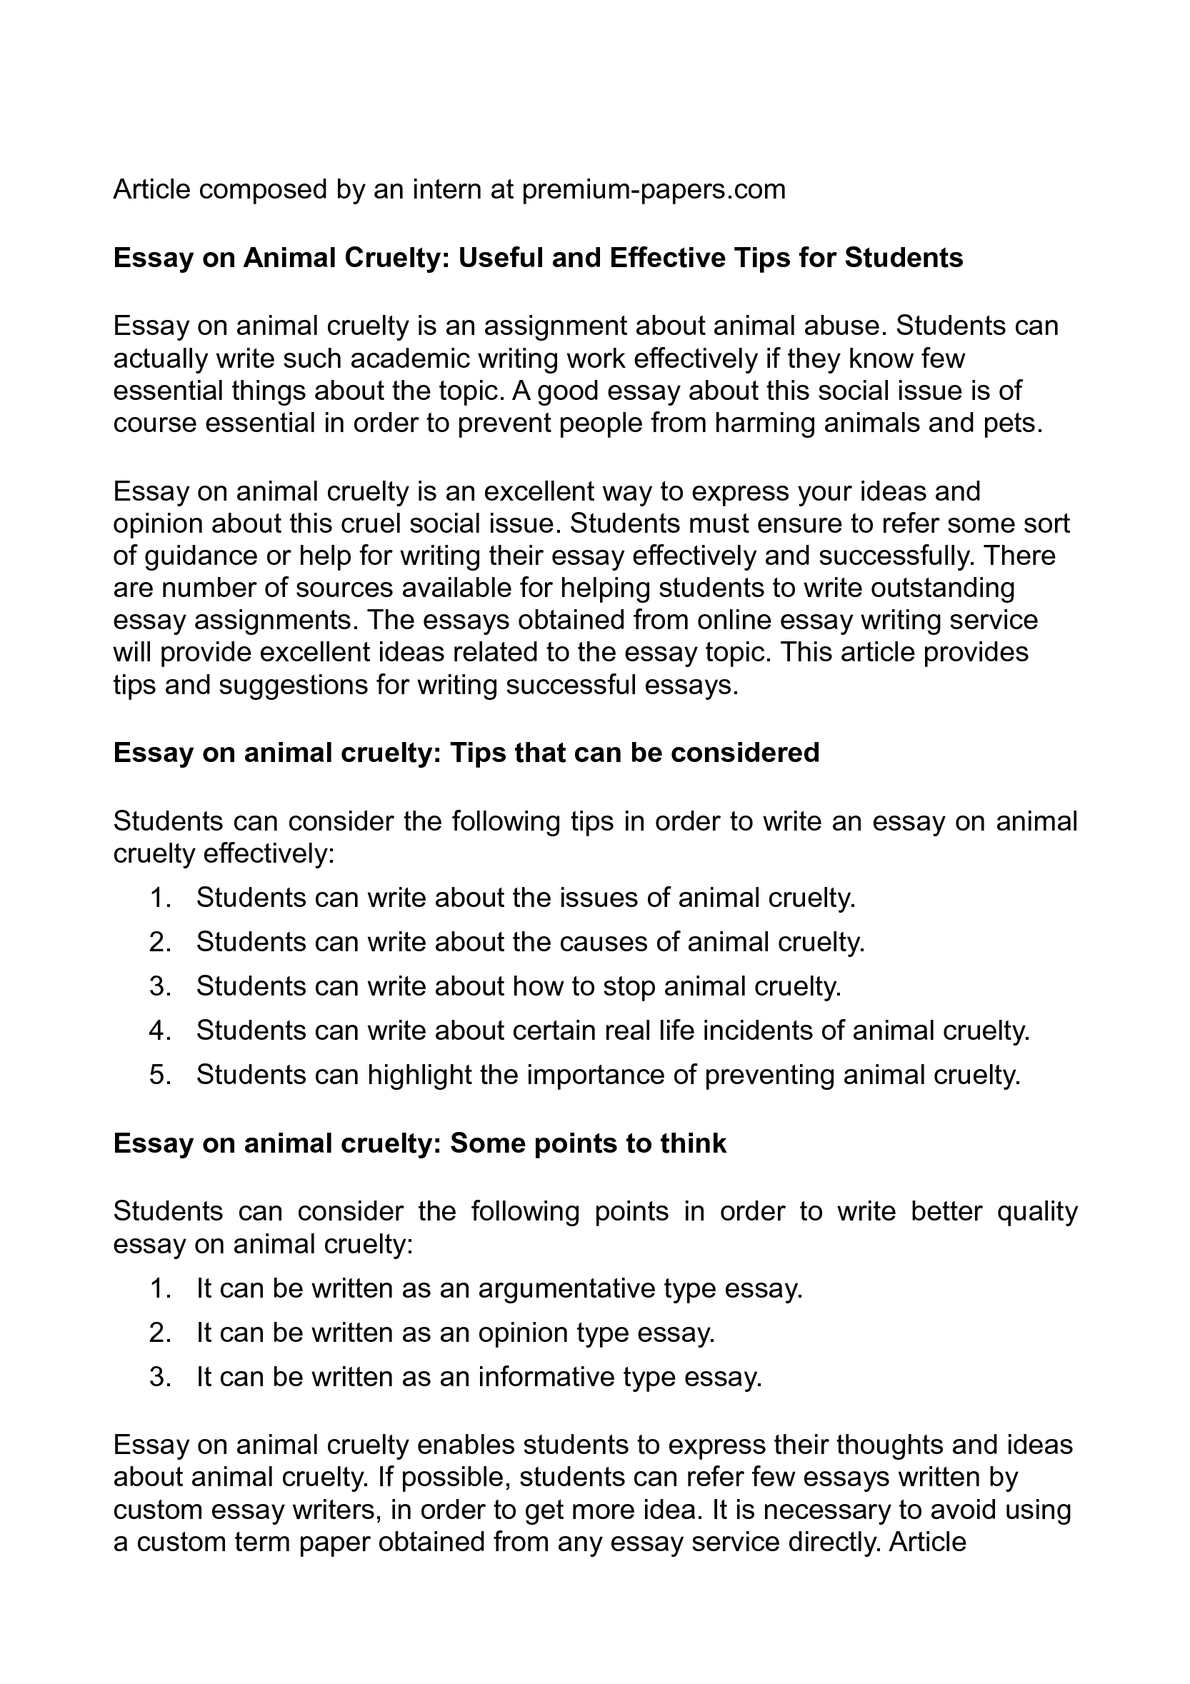 calameo essay on animal cruelty useful and effective tips for  calameo essay on animal cruelty useful and effective tips for students